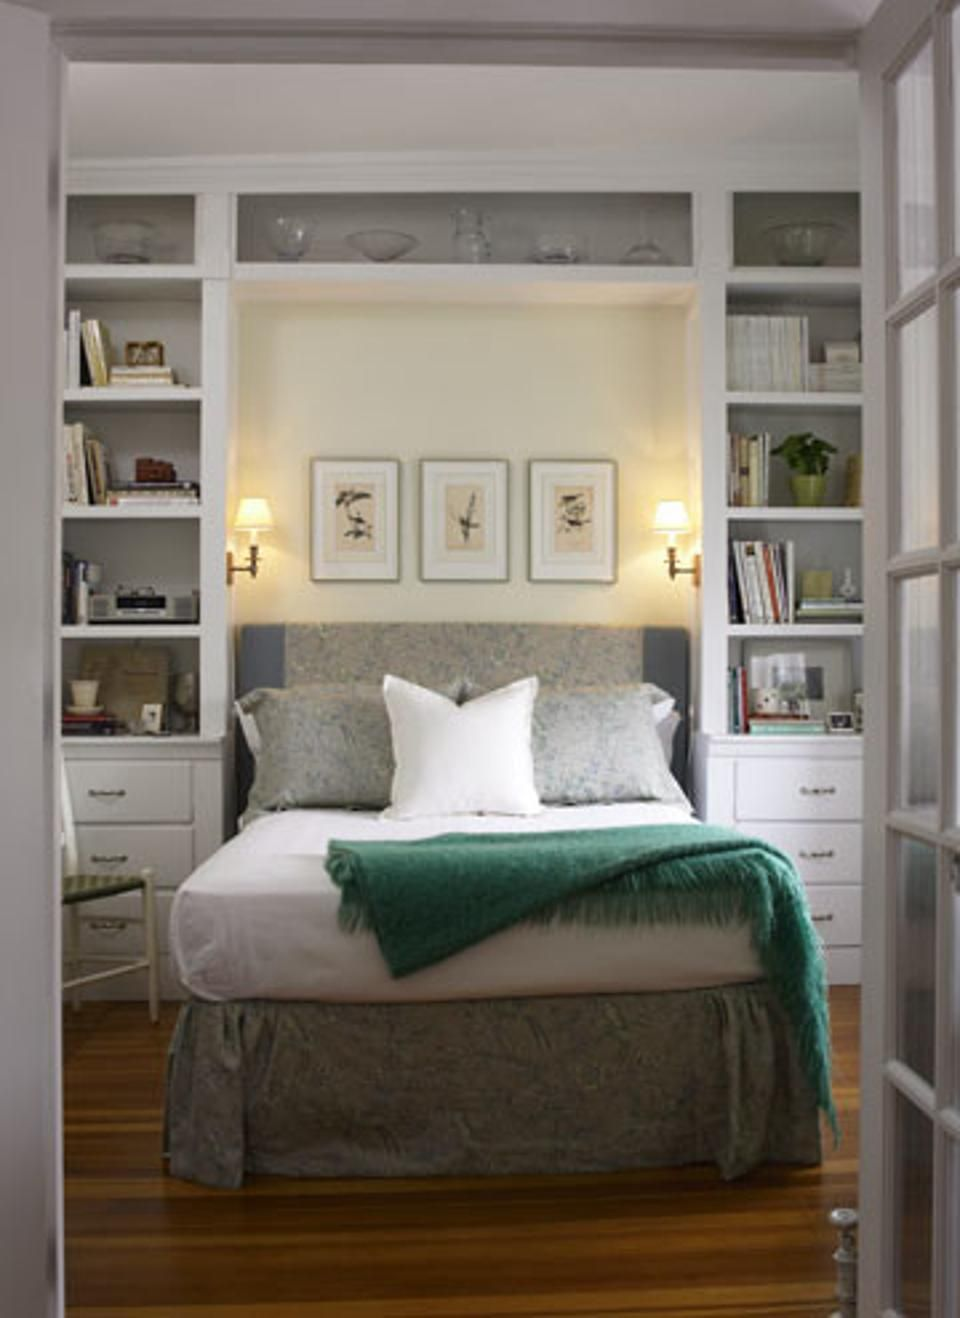 10 tips to make a small bedroom look great compact for 10x12 bedroom